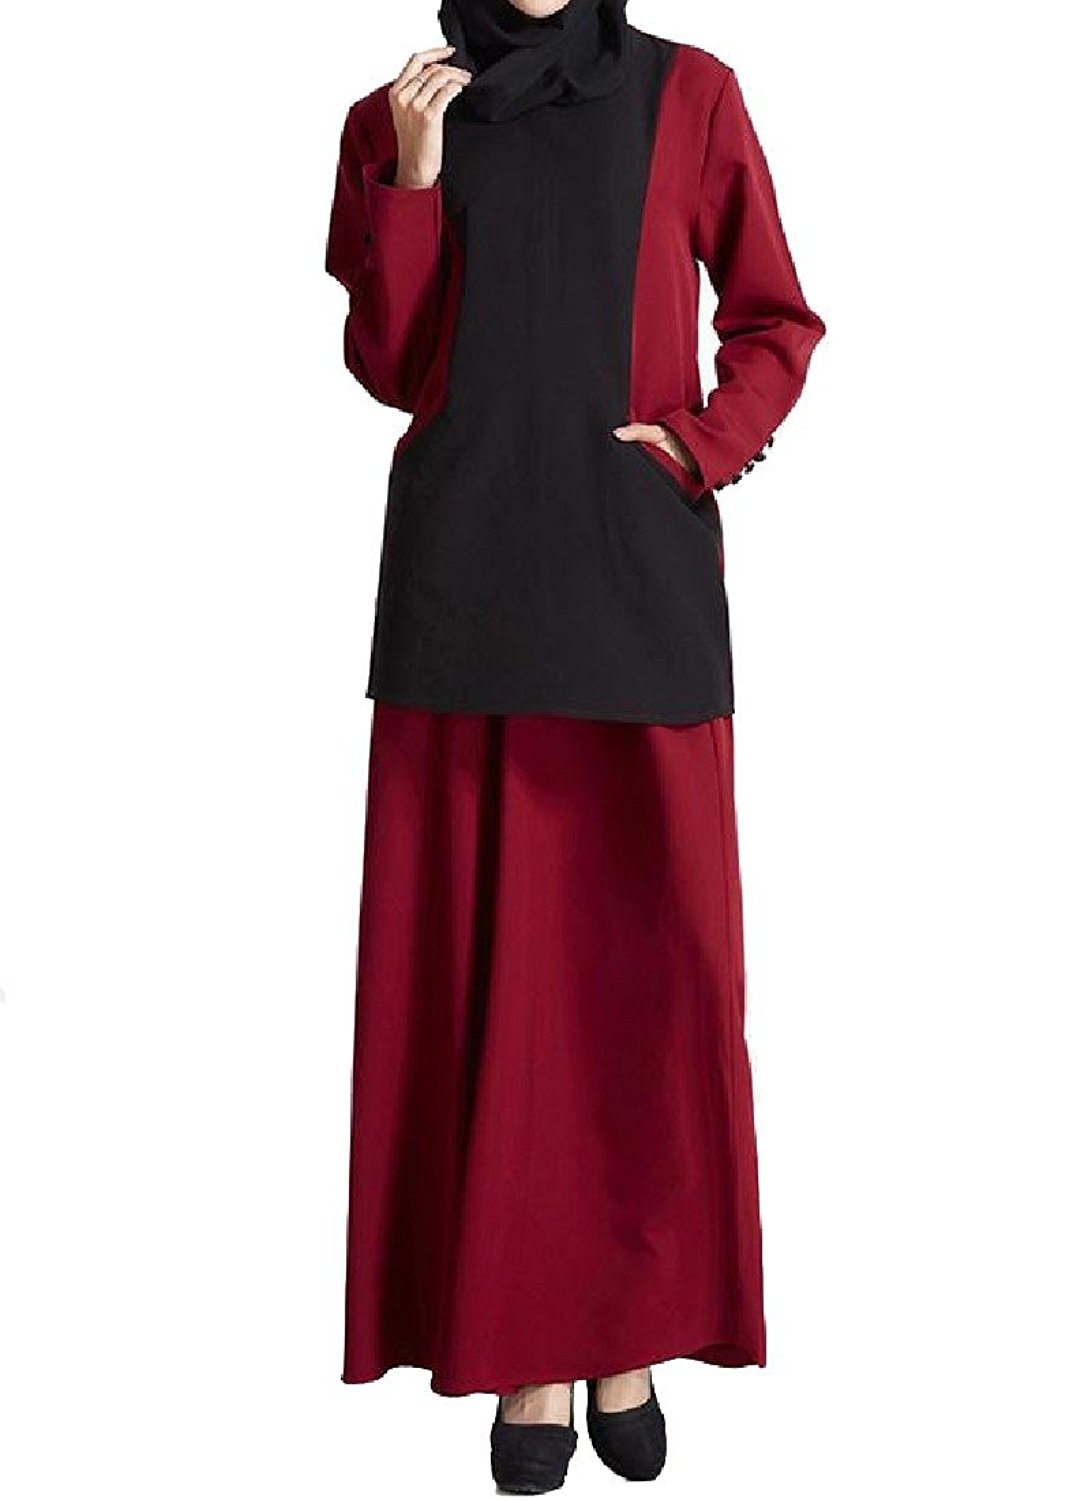 Zimaes-Women Muslim Two-Piece Suit Pockets Hit Color Slim Long Dress